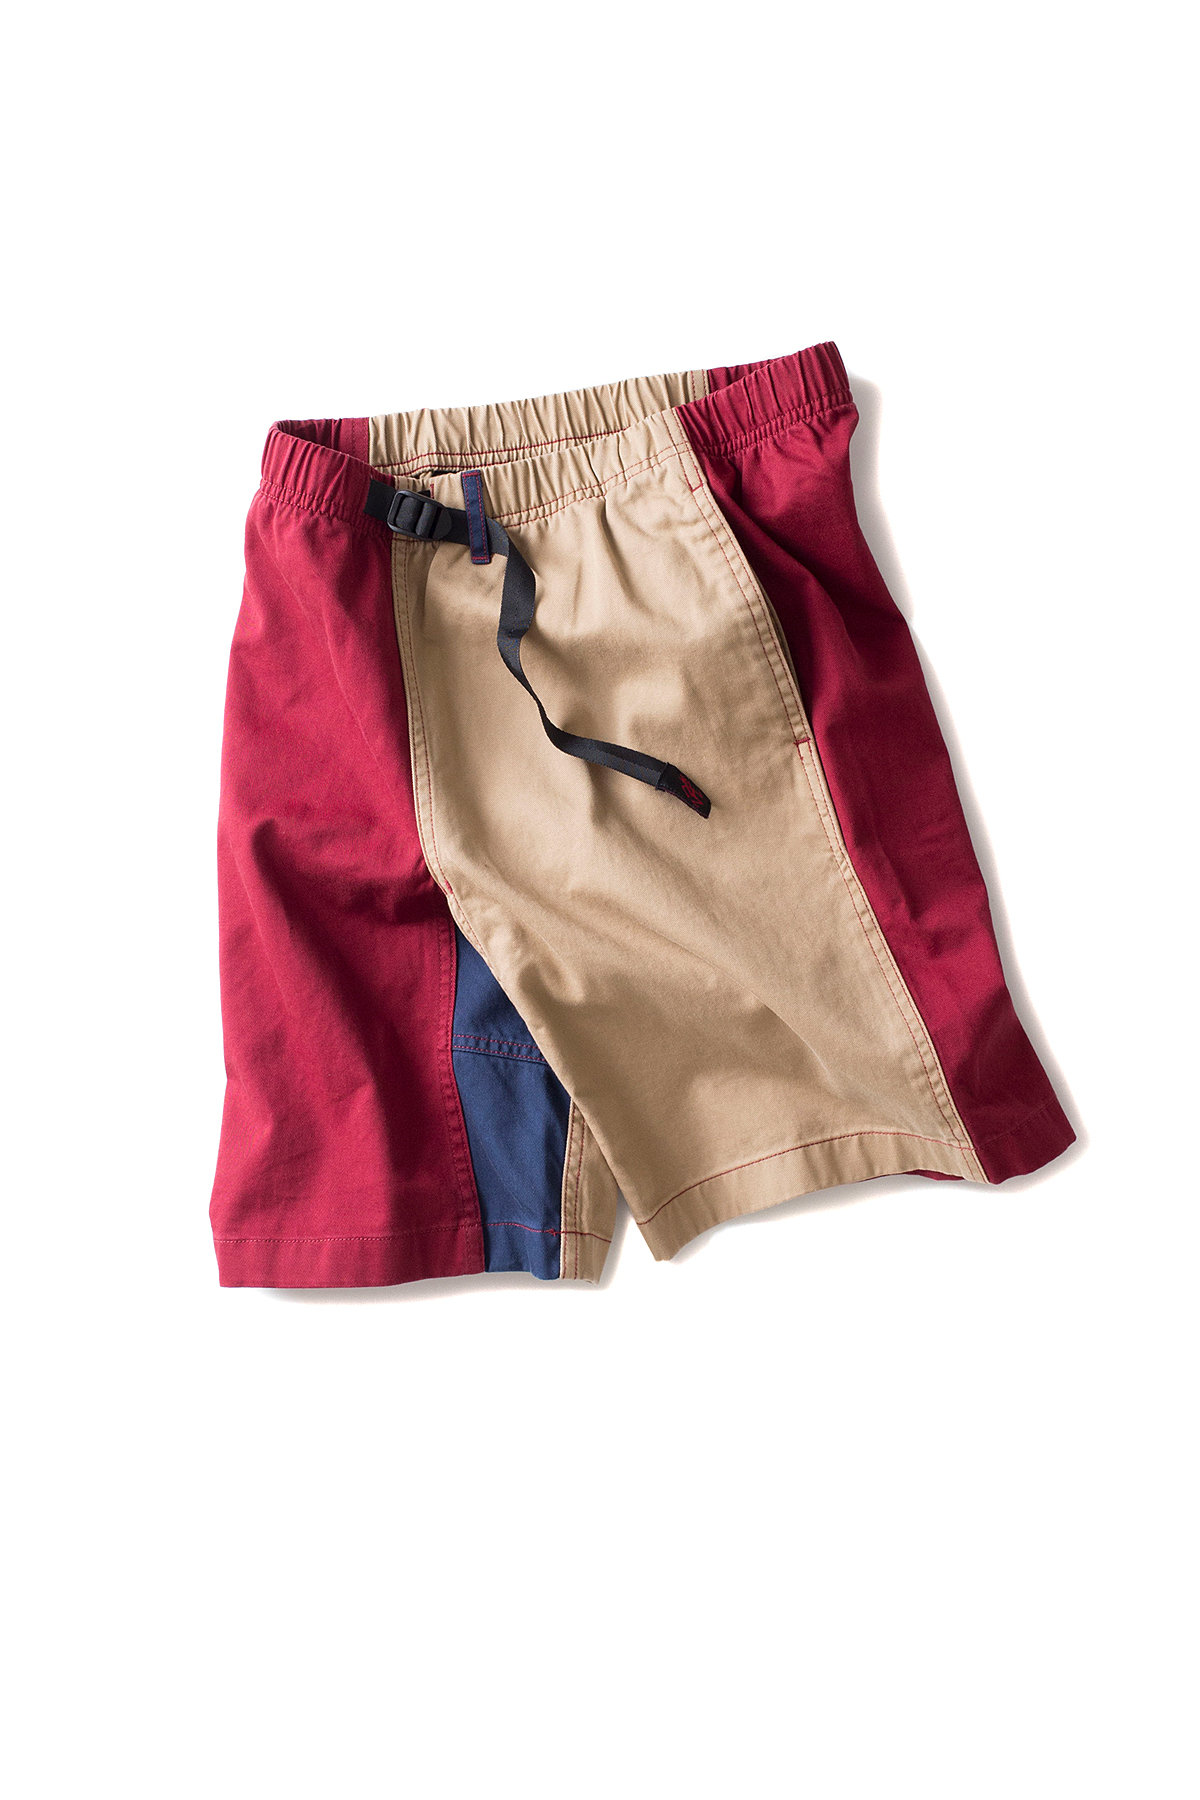 Gramicci : Crazy G-Shorts (Wine x Khak)